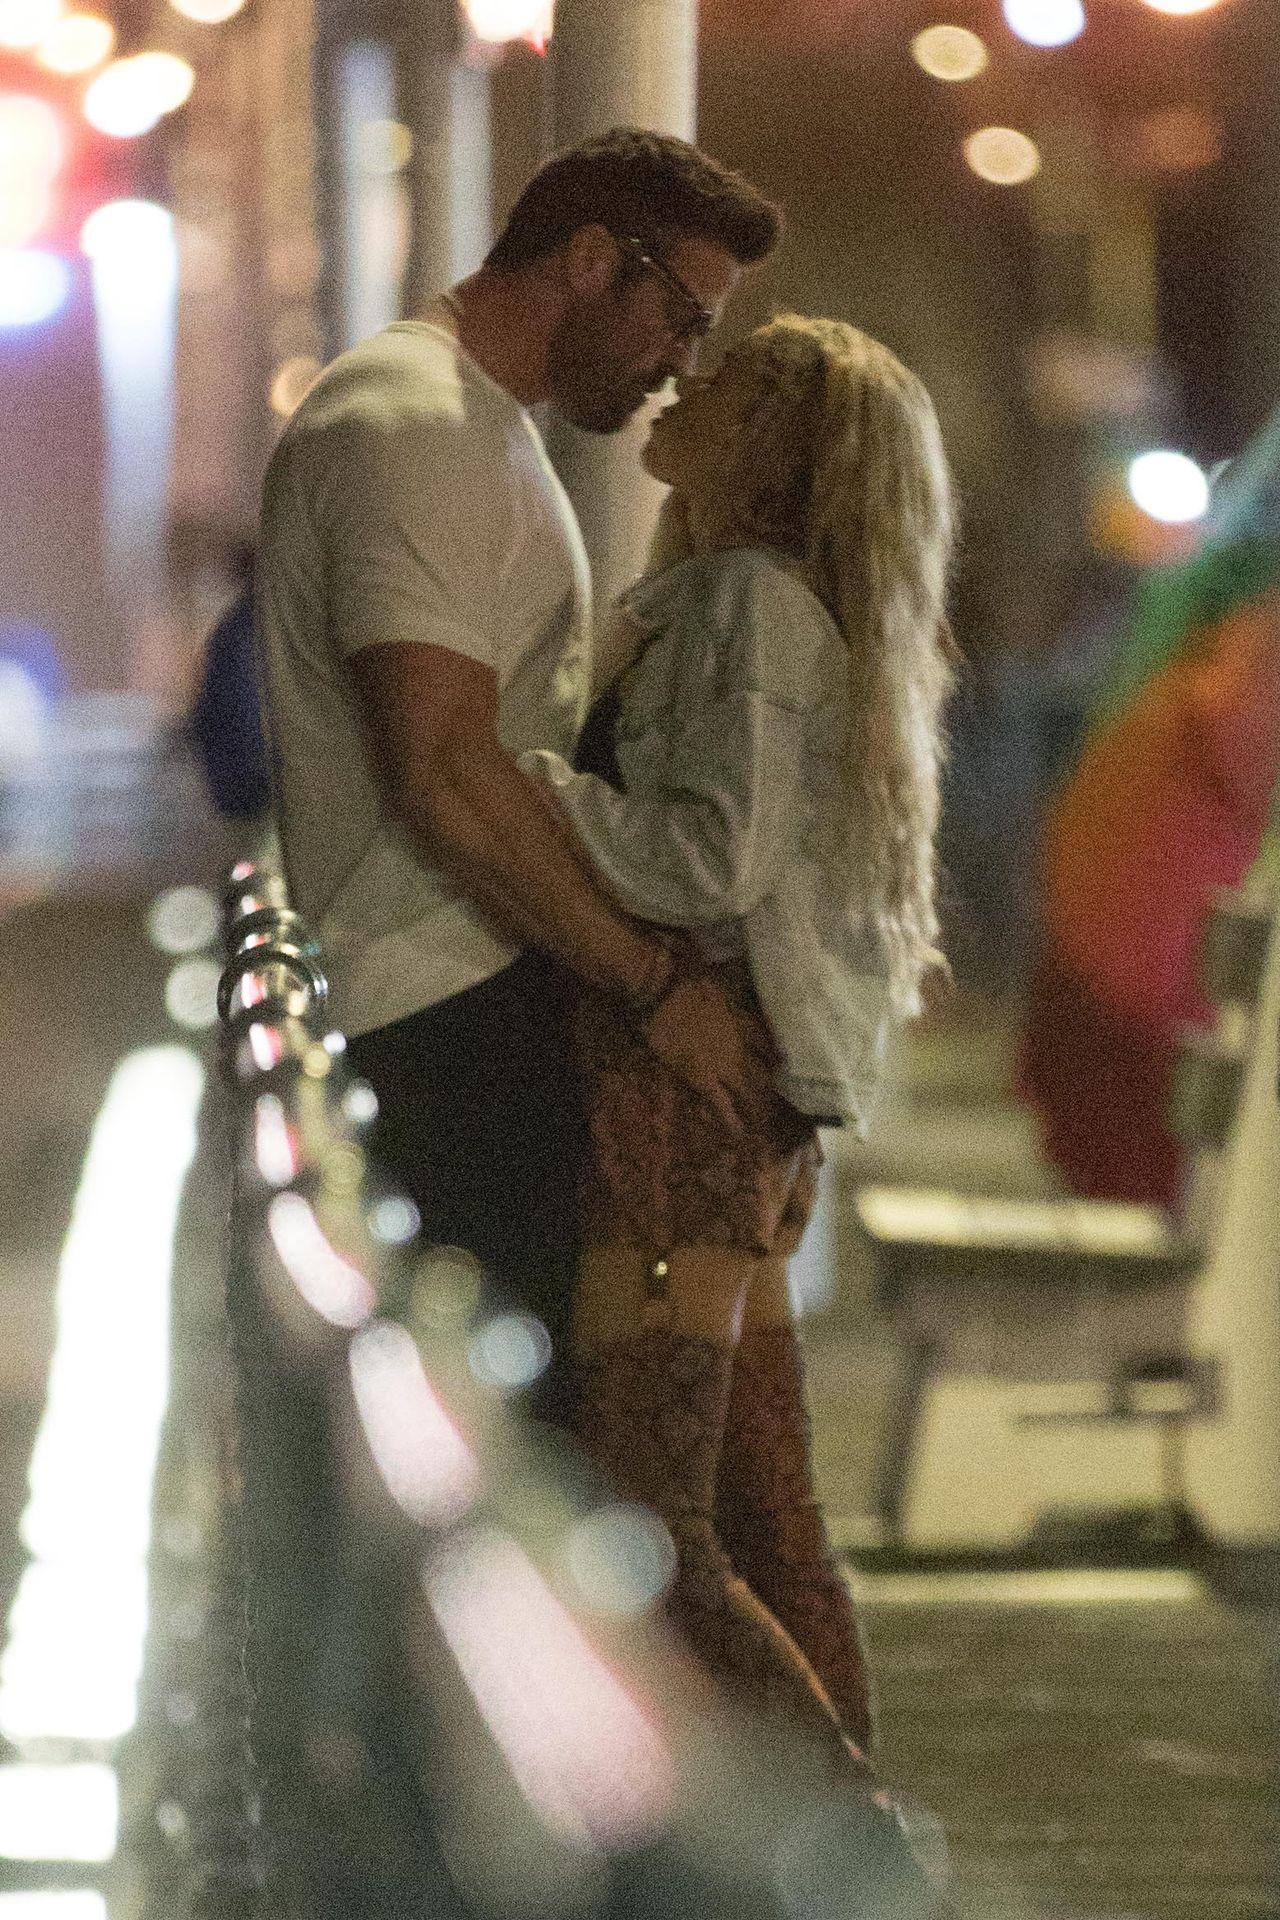 Chad Johnson & Annalise Mishler Are Seen On A Low Key Date At The Santa Monica Pier 0002